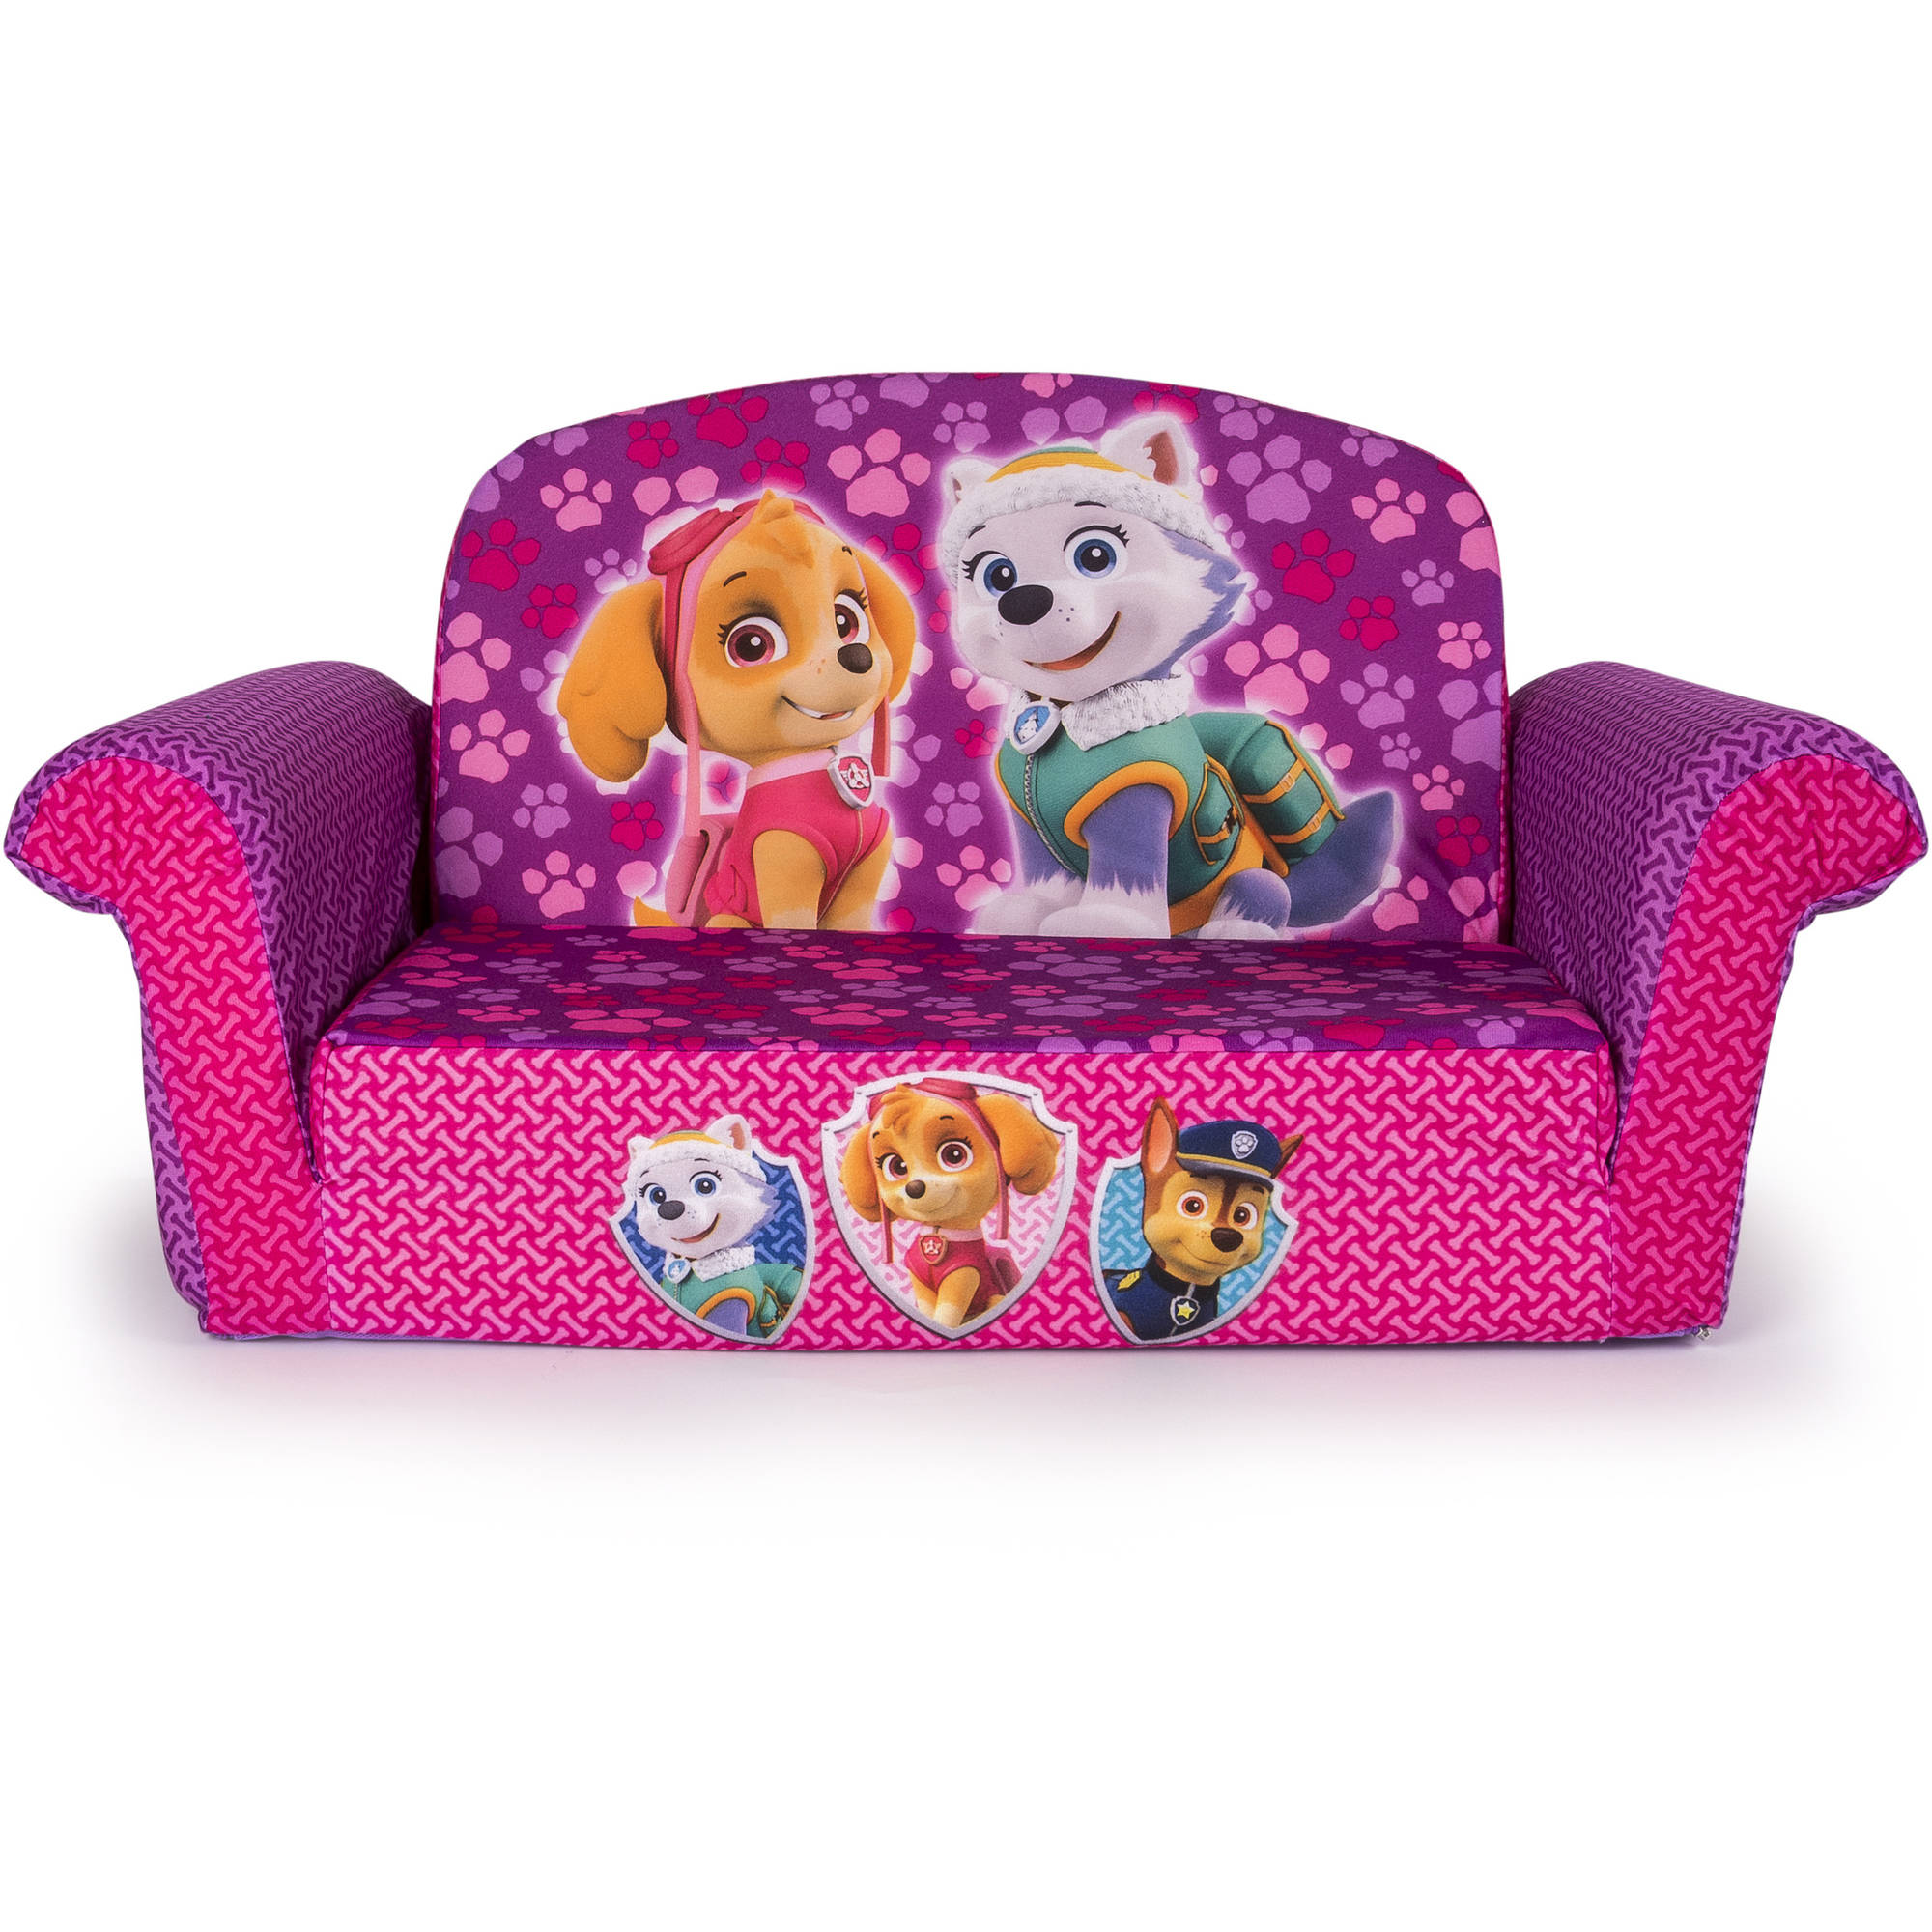 Exceptionnel Marshmallow 2 In 1 Flip Open Sofa, Paw Patrol Pink Edition